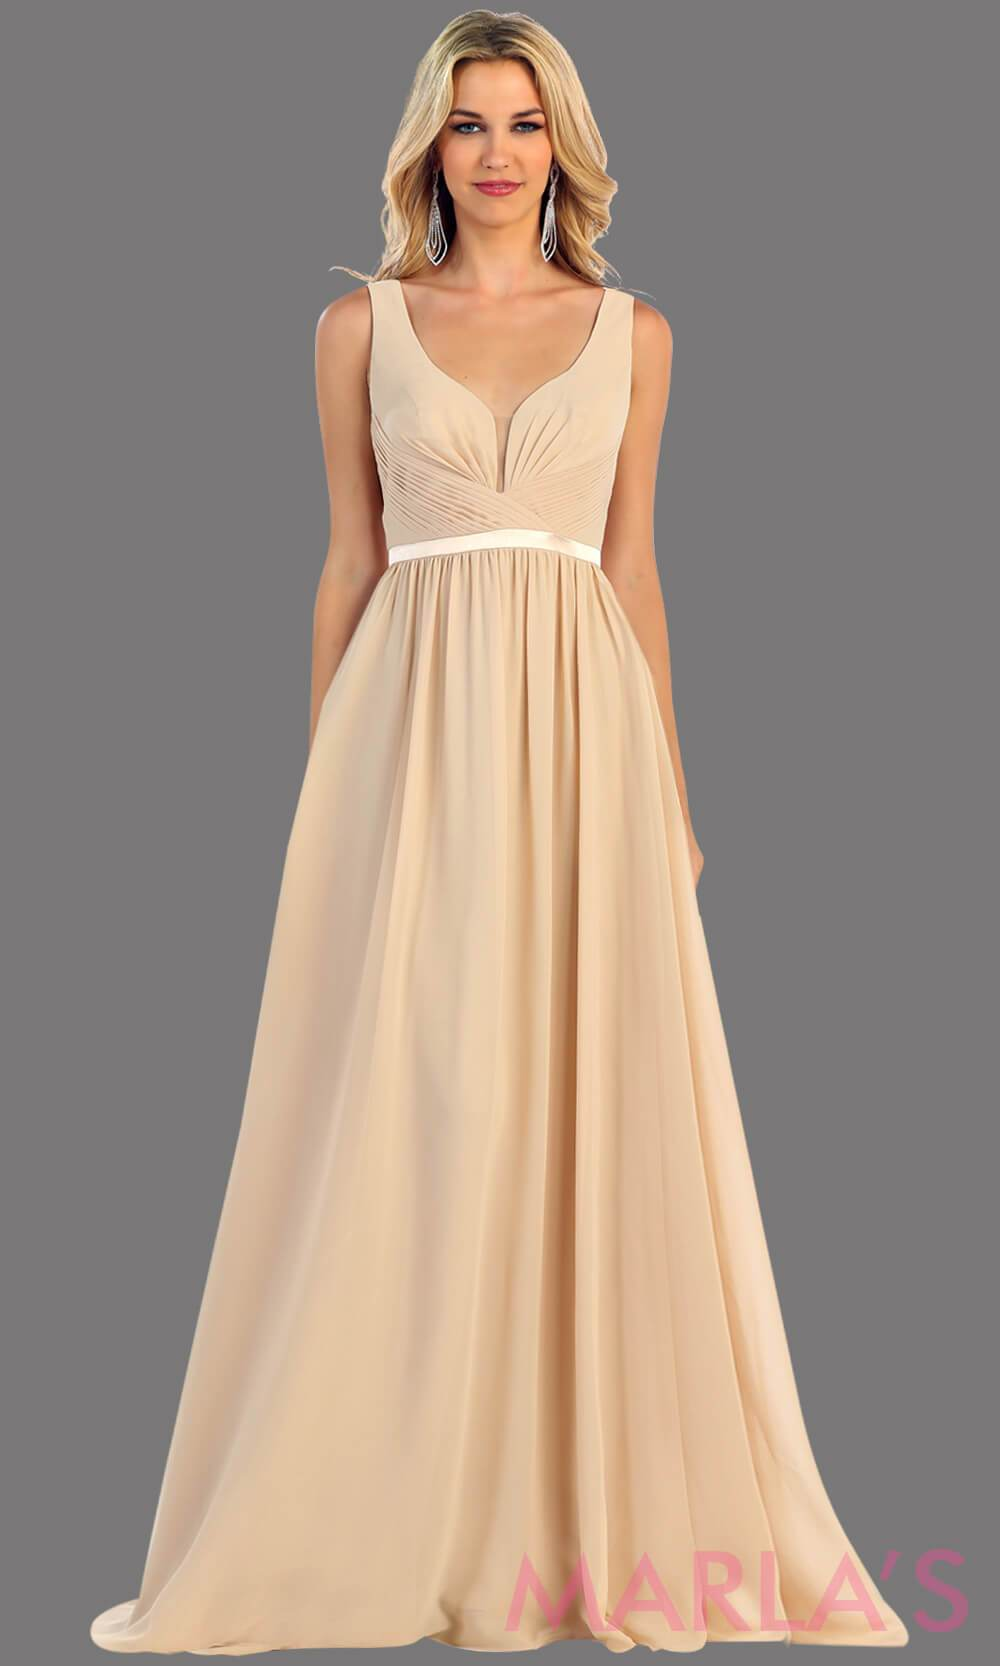 Long champagne dress with wide straps and v neck dress. This simple evening gown is perfect for a wedding guest dress, simple light prom dress, or even a bridesmaid dress. This dress is available in plus size.